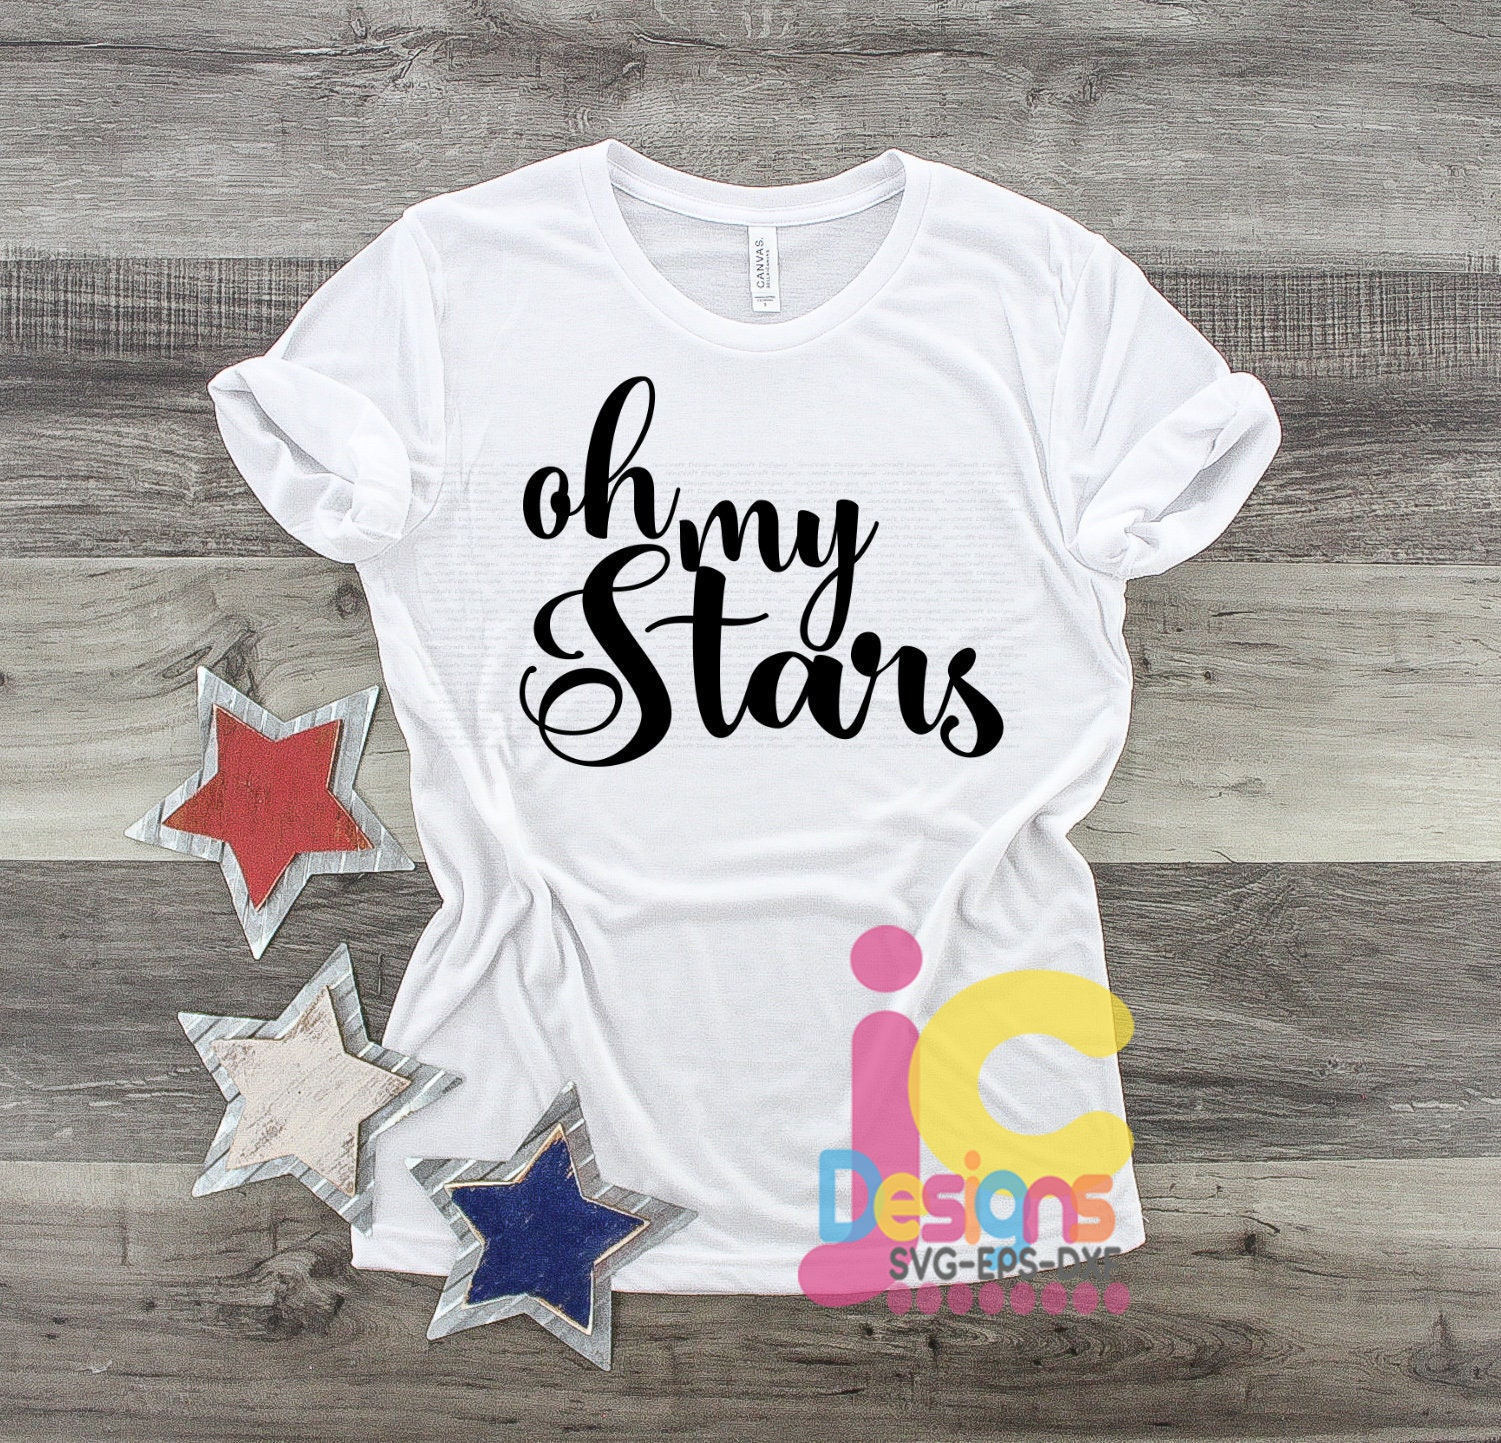 July 4th Oh My Stars 4th Of July Svg Cut File Patriotic Fourth Of July Independence Day Flag Digital Sublimation Svg Eps Dxf Png